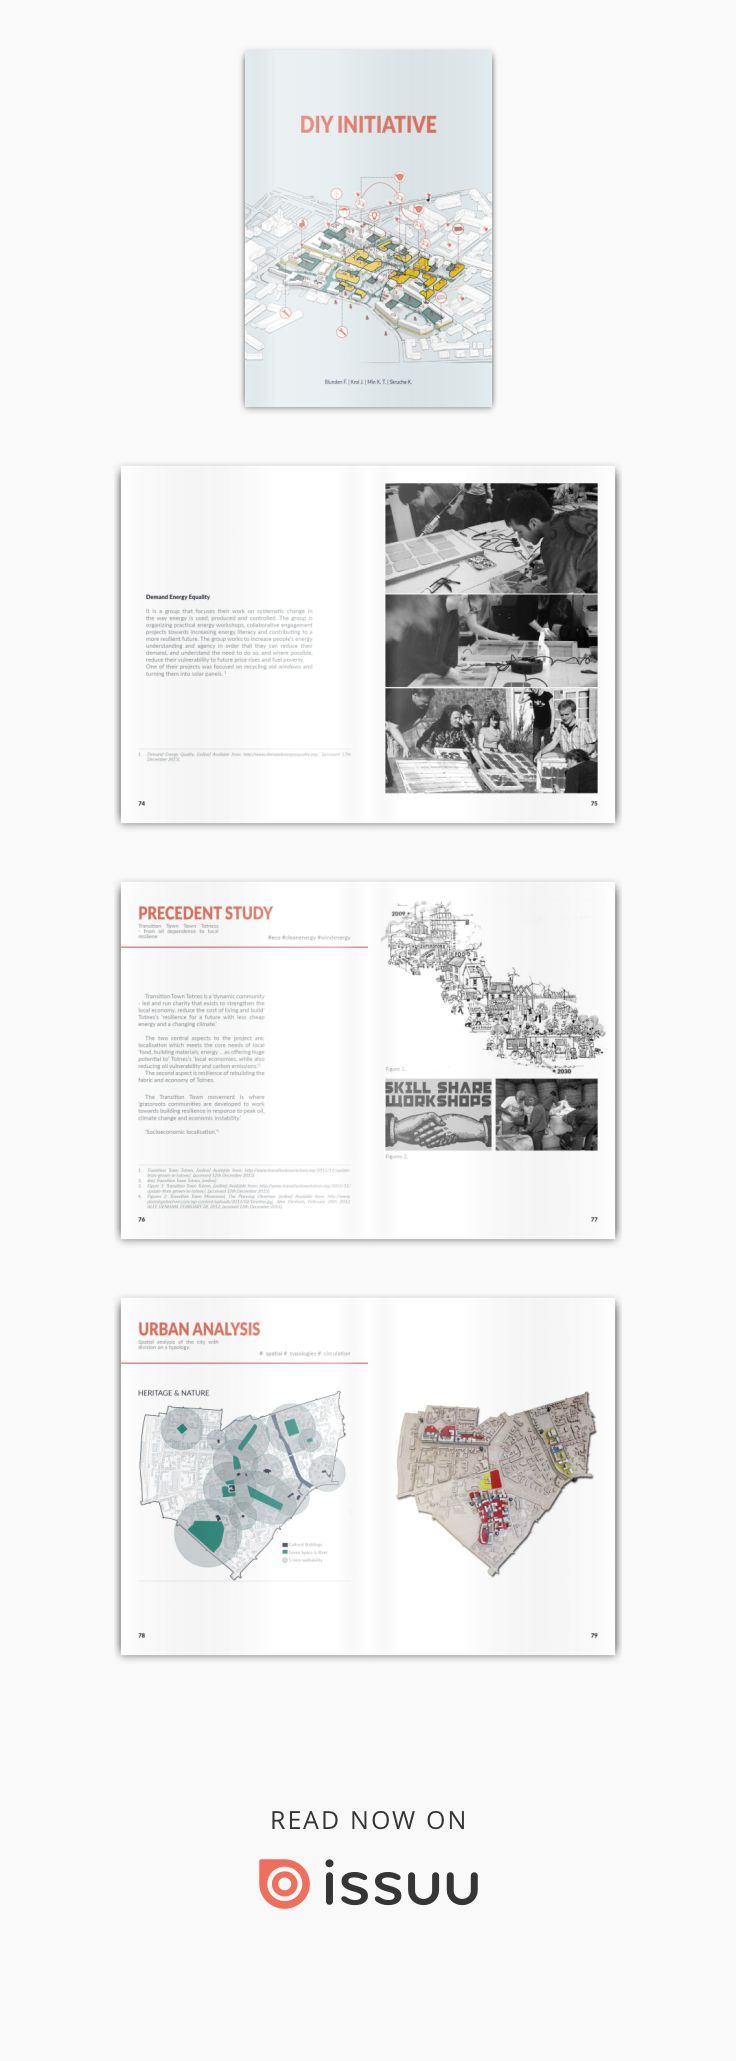 Best 25+ Executive summary ideas on Pinterest | Writing a business ...